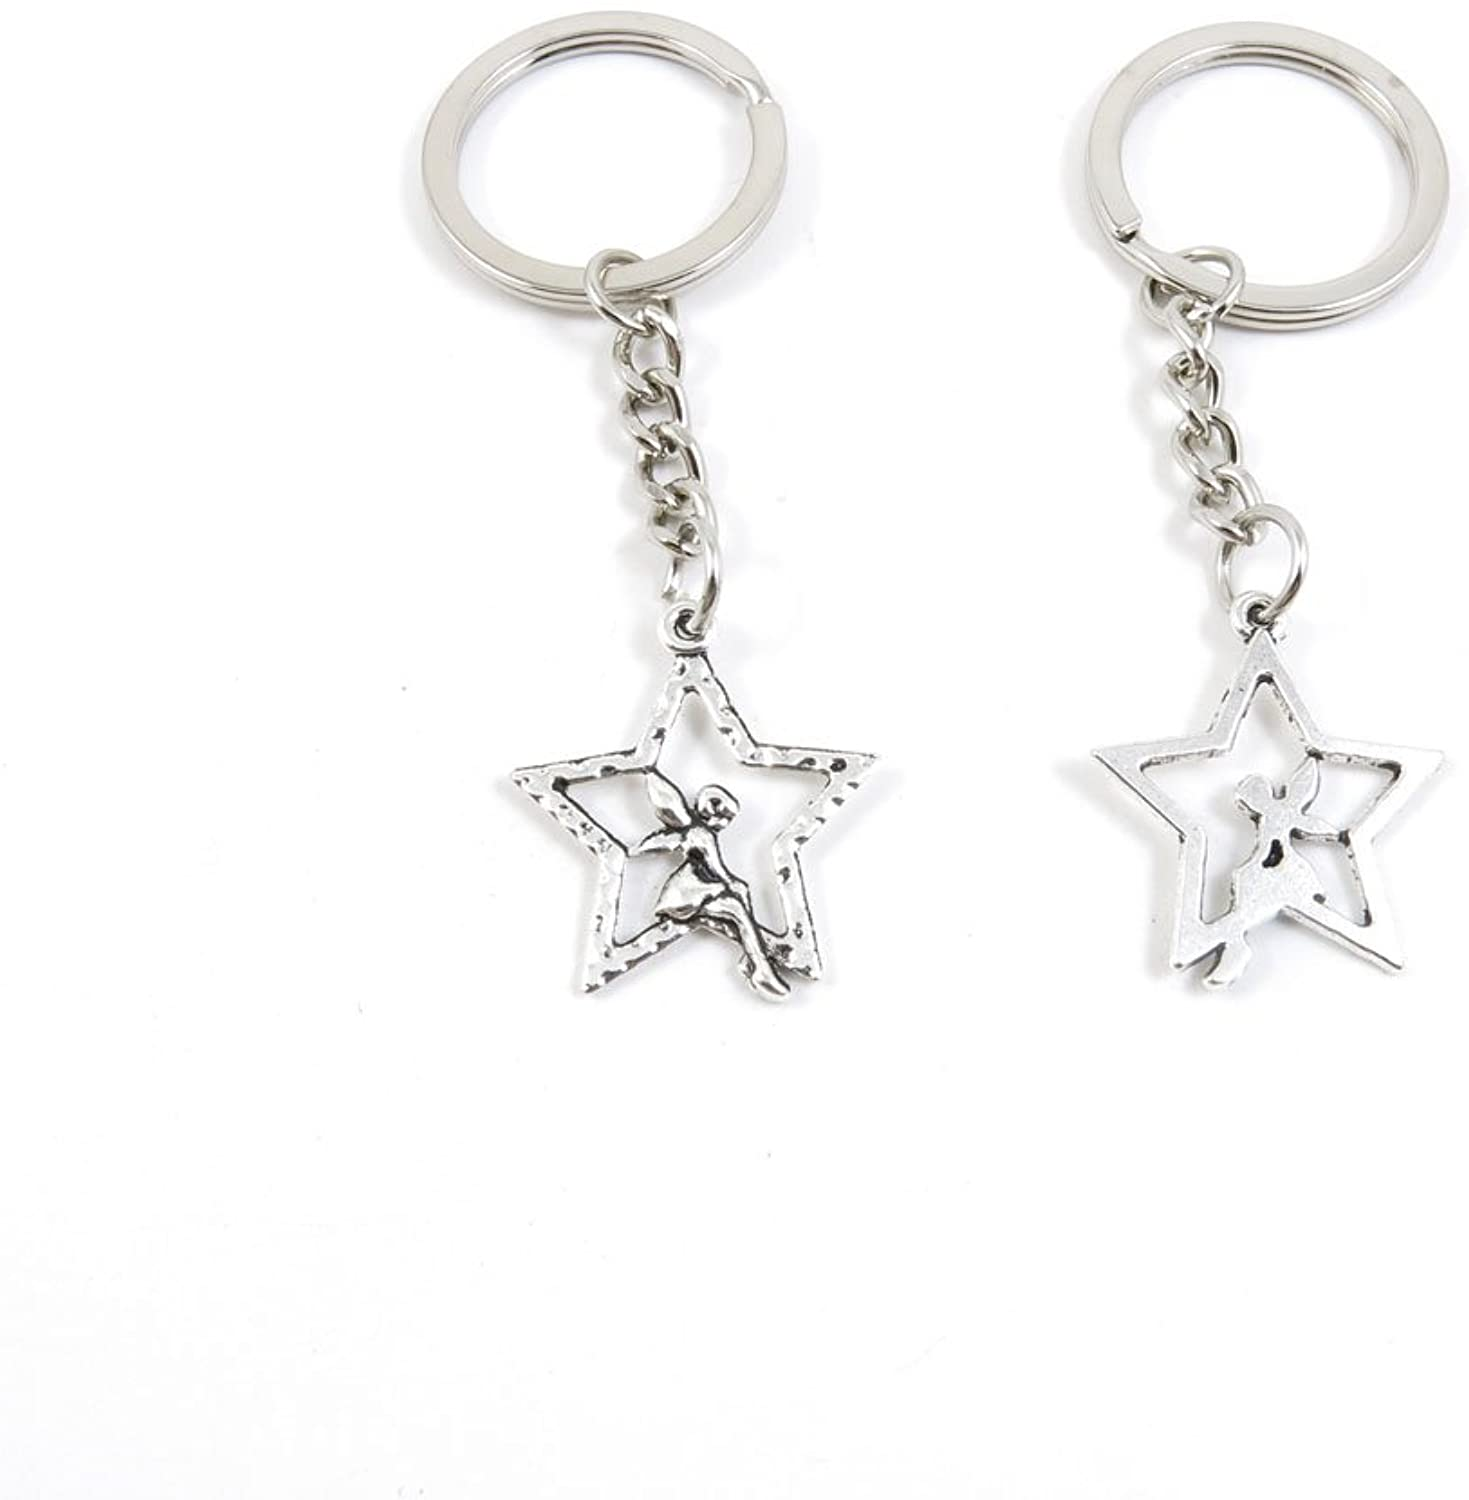 220 Pieces Fashion Jewelry Keyring Keychain Door Car Key Tag Ring Chain Supplier Supply Wholesale Bulk Lots N1YD2 Star Fairy